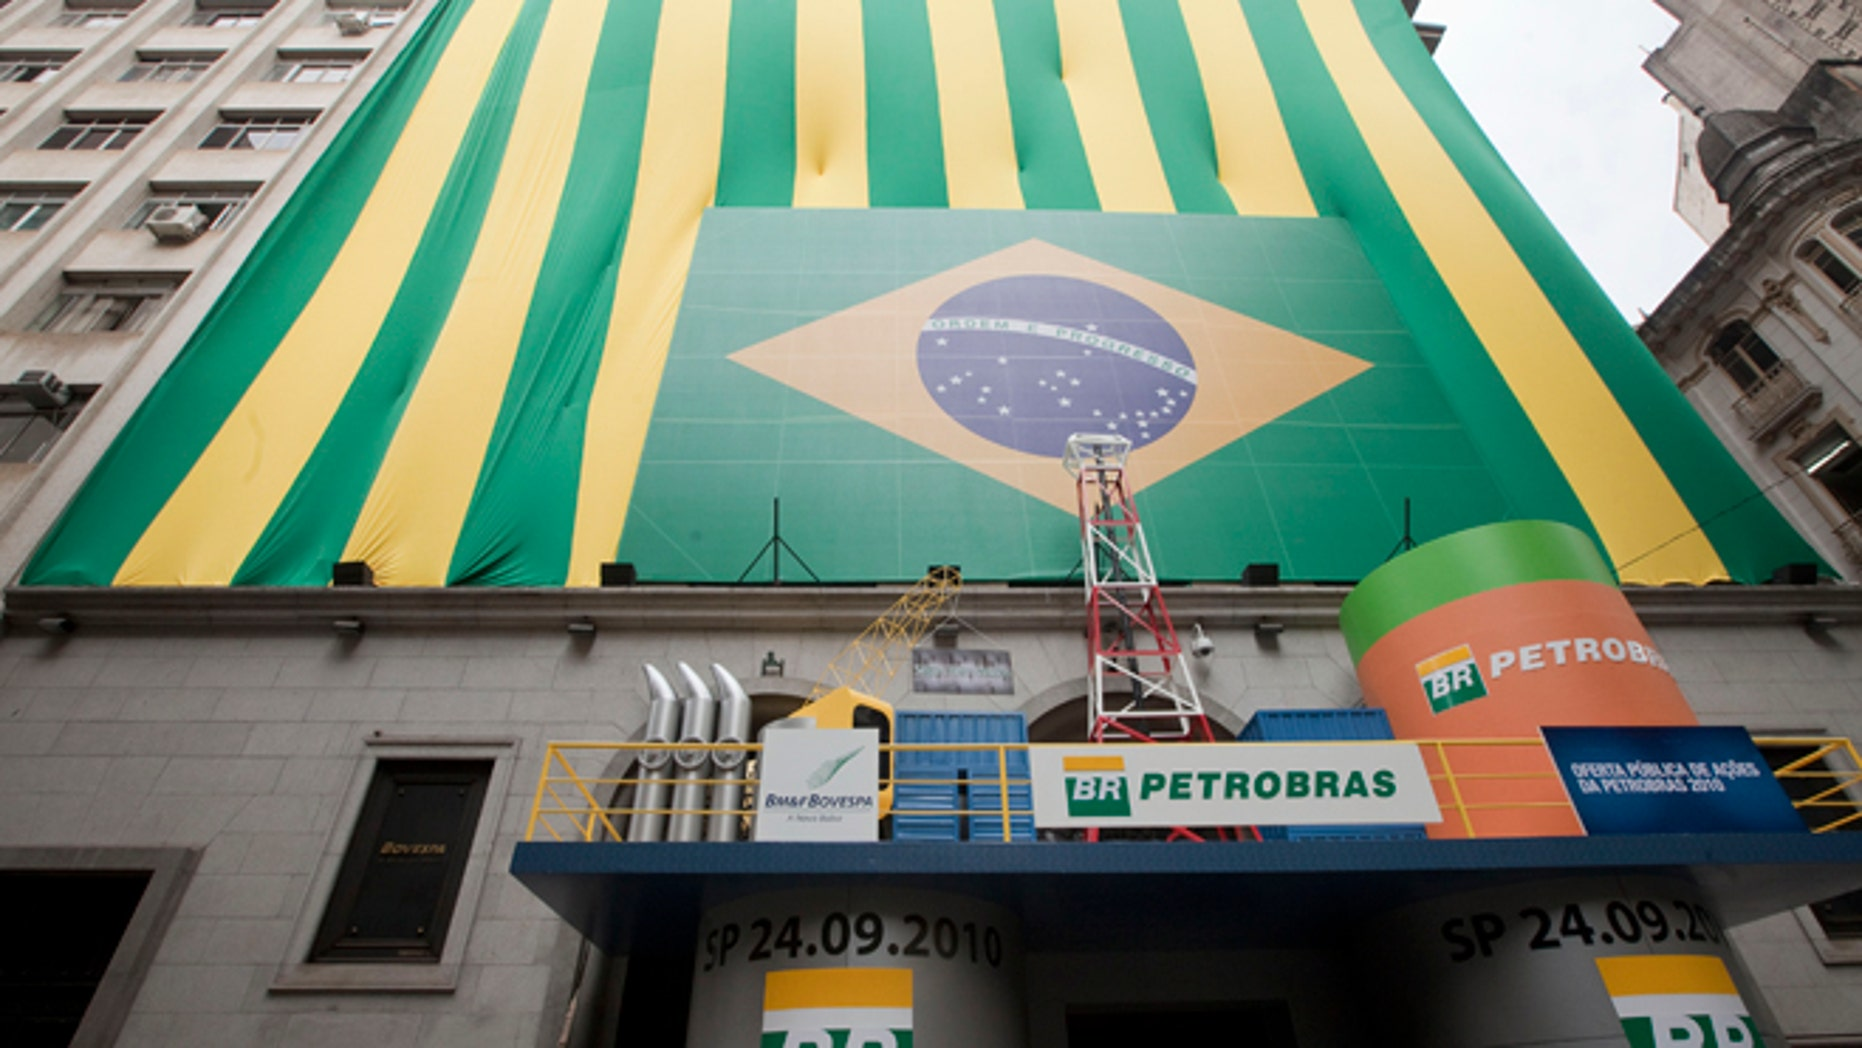 """FILE - In this Sept. 24, 2010 file photo, a Brazilian flag and the word """"Petrobras"""" decorate the entrance of the stock market building on the first day of trading in Sao Paulo, Brazil. Brazils Attorney General Rodrigo asked the nations Supreme Court on Tuesday, March 3, 2015 for permission to investigate top political figures for alleged involvement in a kickback scheme at the state-run oil company Petrobras, which prosecutors say is the countrys largest corruption scandal yet uncovered. (AP Photo/Andre Penner, File)"""